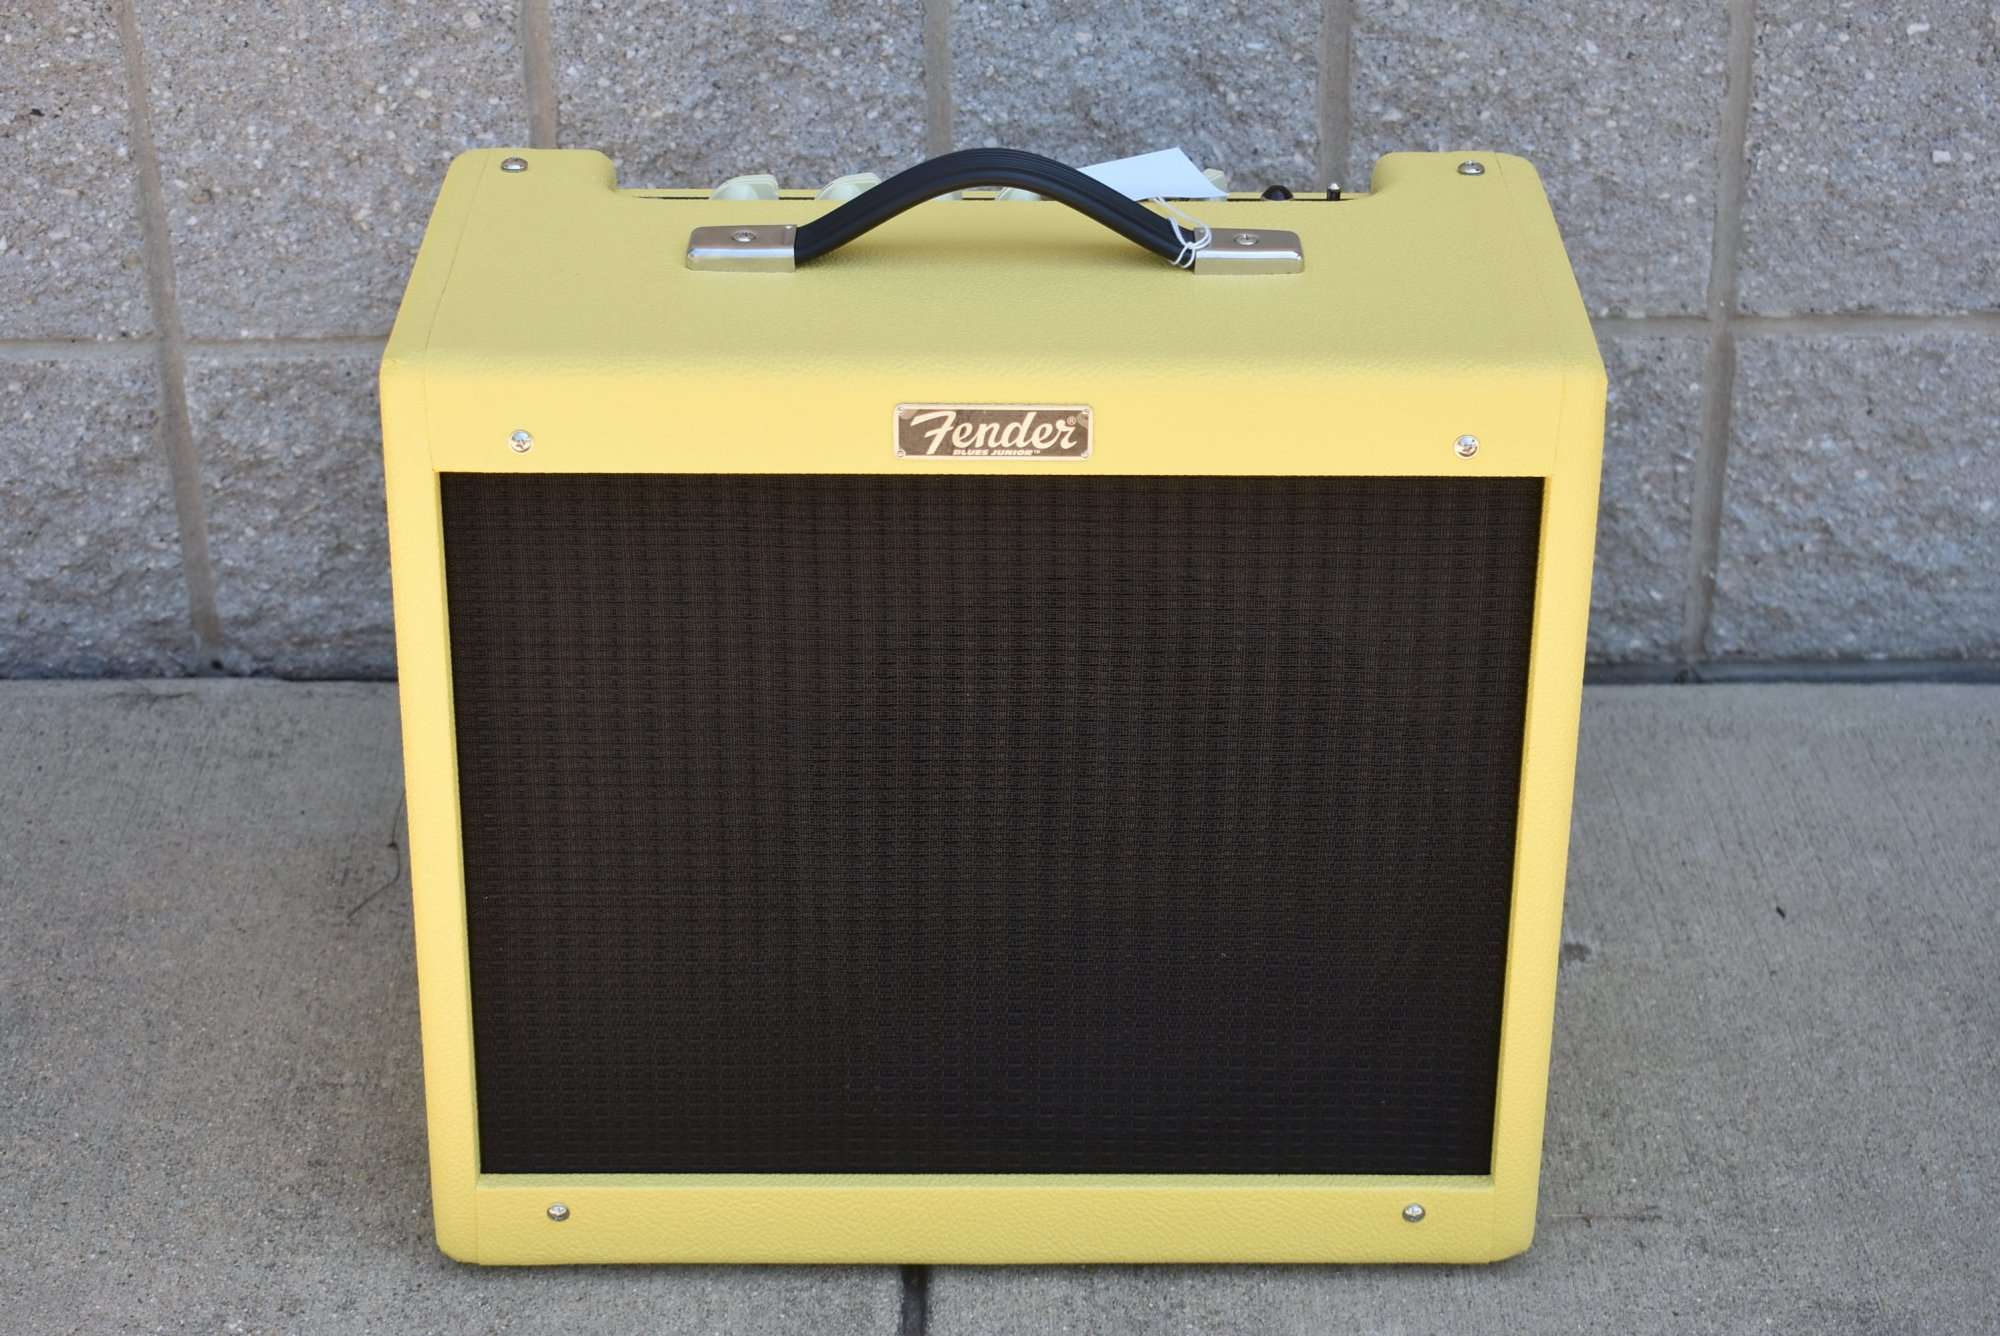 Fender 2020 Limited Edition Blues Junior IV Swamp Thang  Graffiti Yellow